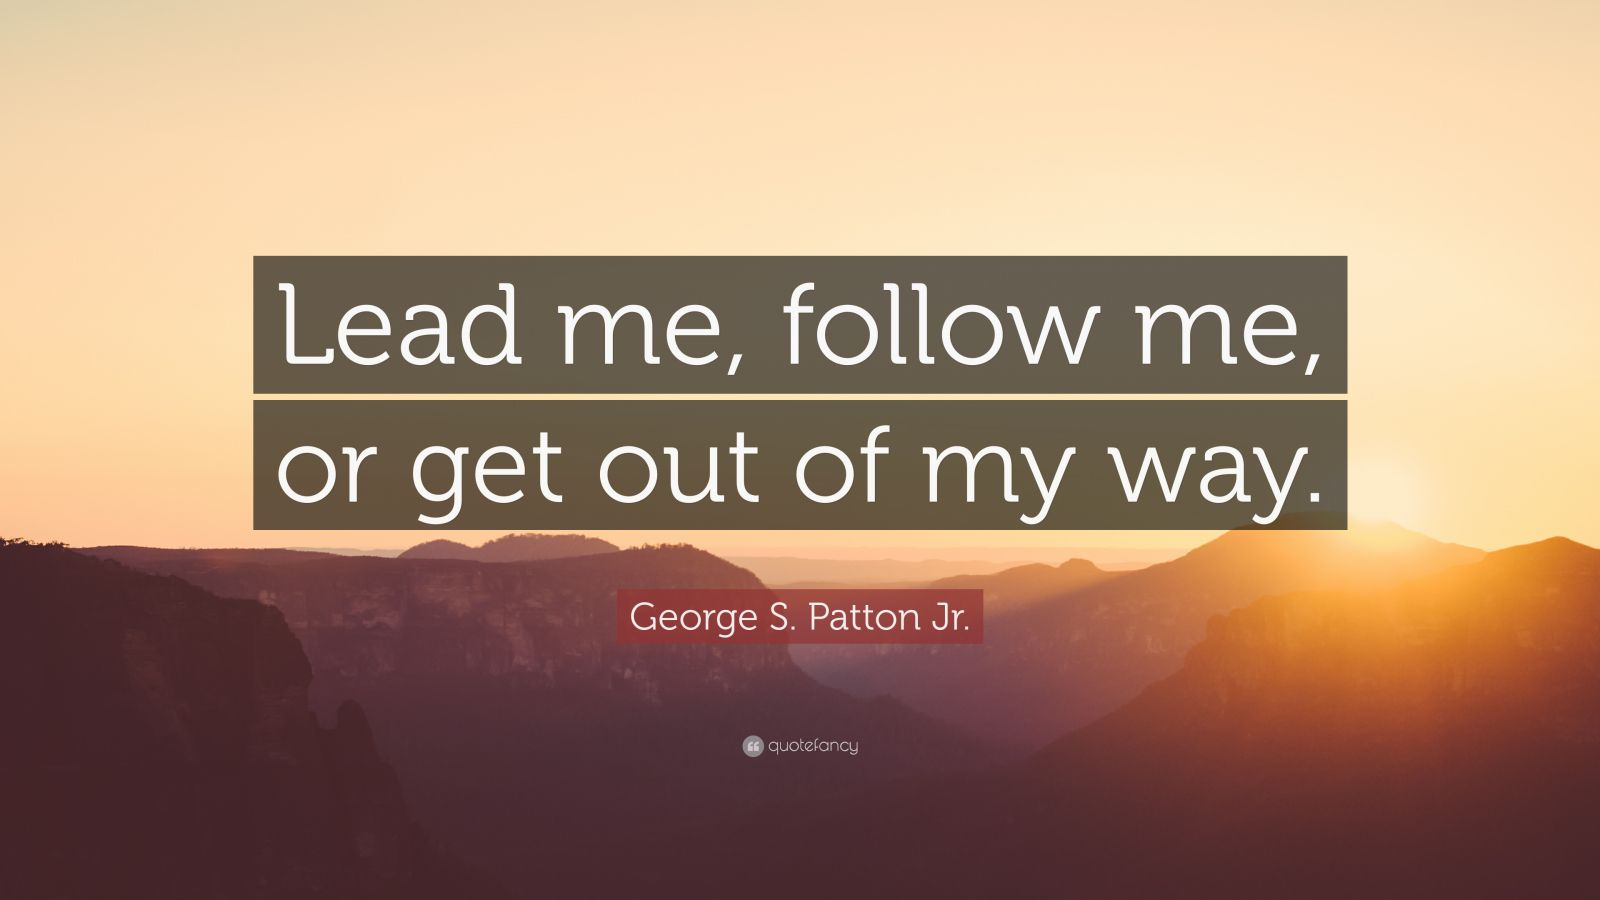 Elon Musk Quotes Wallpaper George S Patton Jr Quote Lead Me Follow Me Or Get